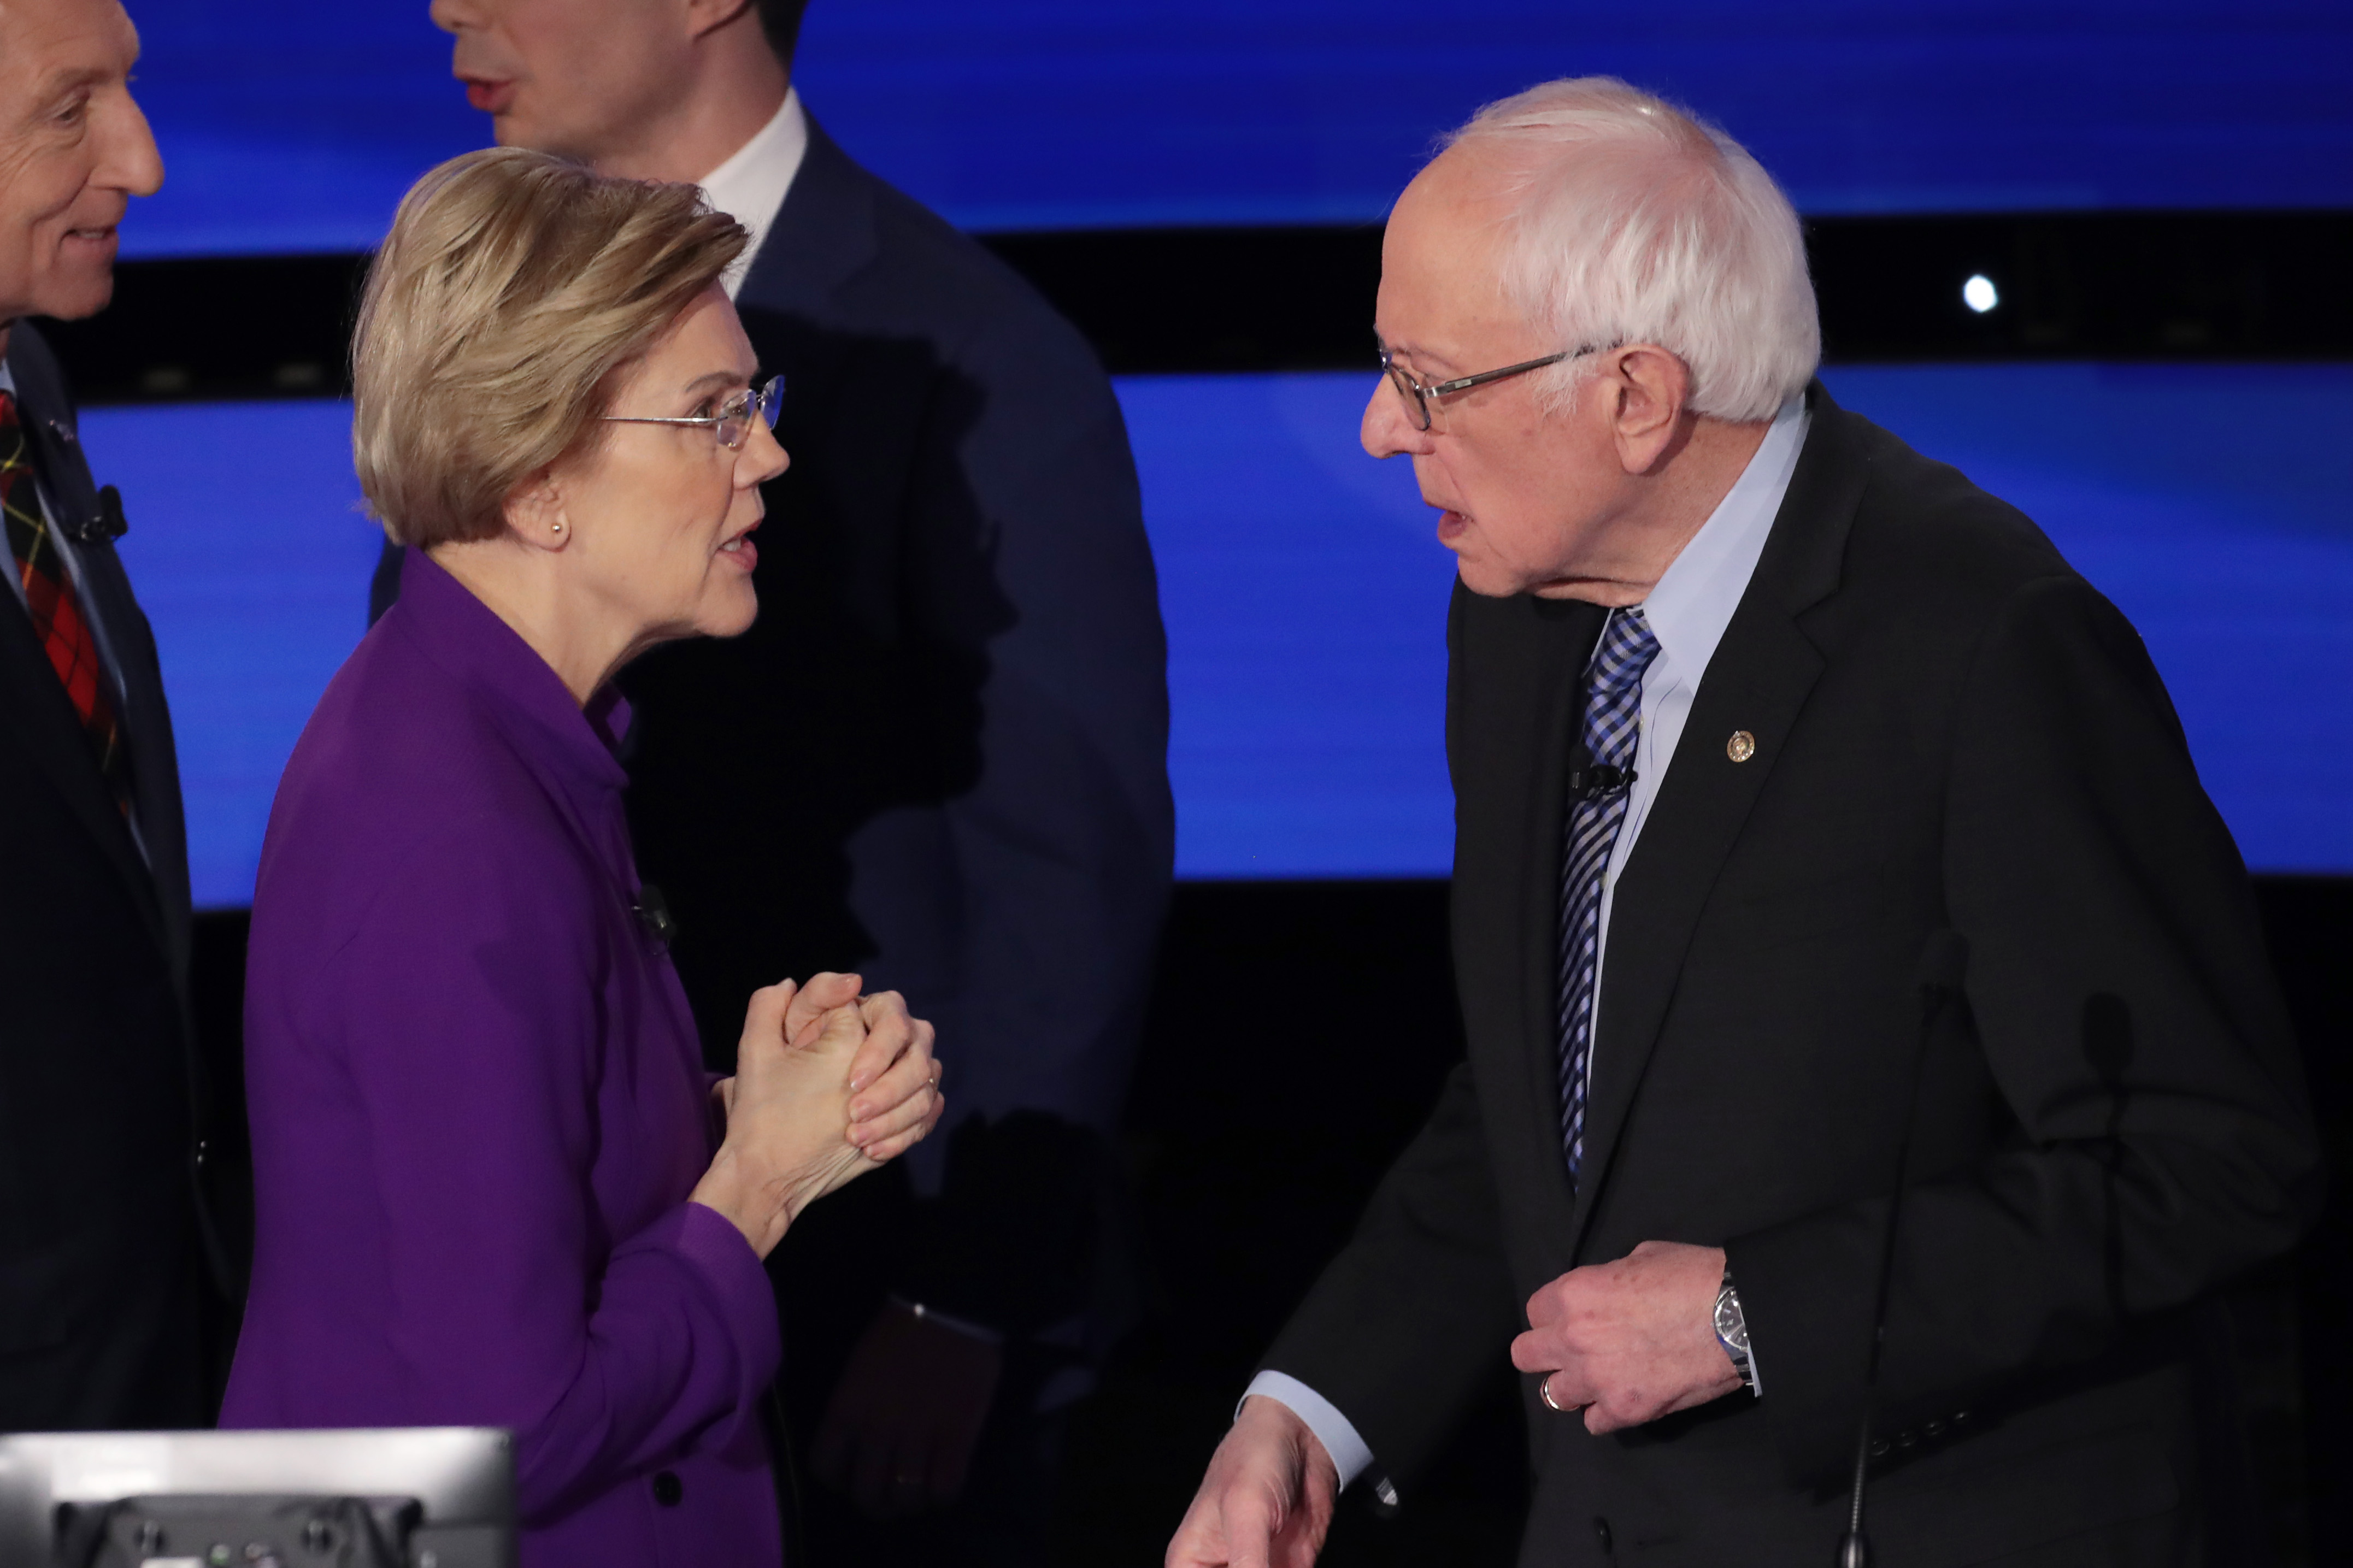 DES MOINES, IOWA - JANUARY 14: Sen. Elizabeth Warren (D-MA) and Sen. Bernie Sanders (I-VT) speak after the Democratic presidential primary debate at Drake University on January 14, 2020 in Des Moines, Iowa. Six candidates out of the field qualified for the first Democratic presidential primary debate of 2020, hosted by CNN and the Des Moines Register. (Photo by Scott Olson/Getty Images)